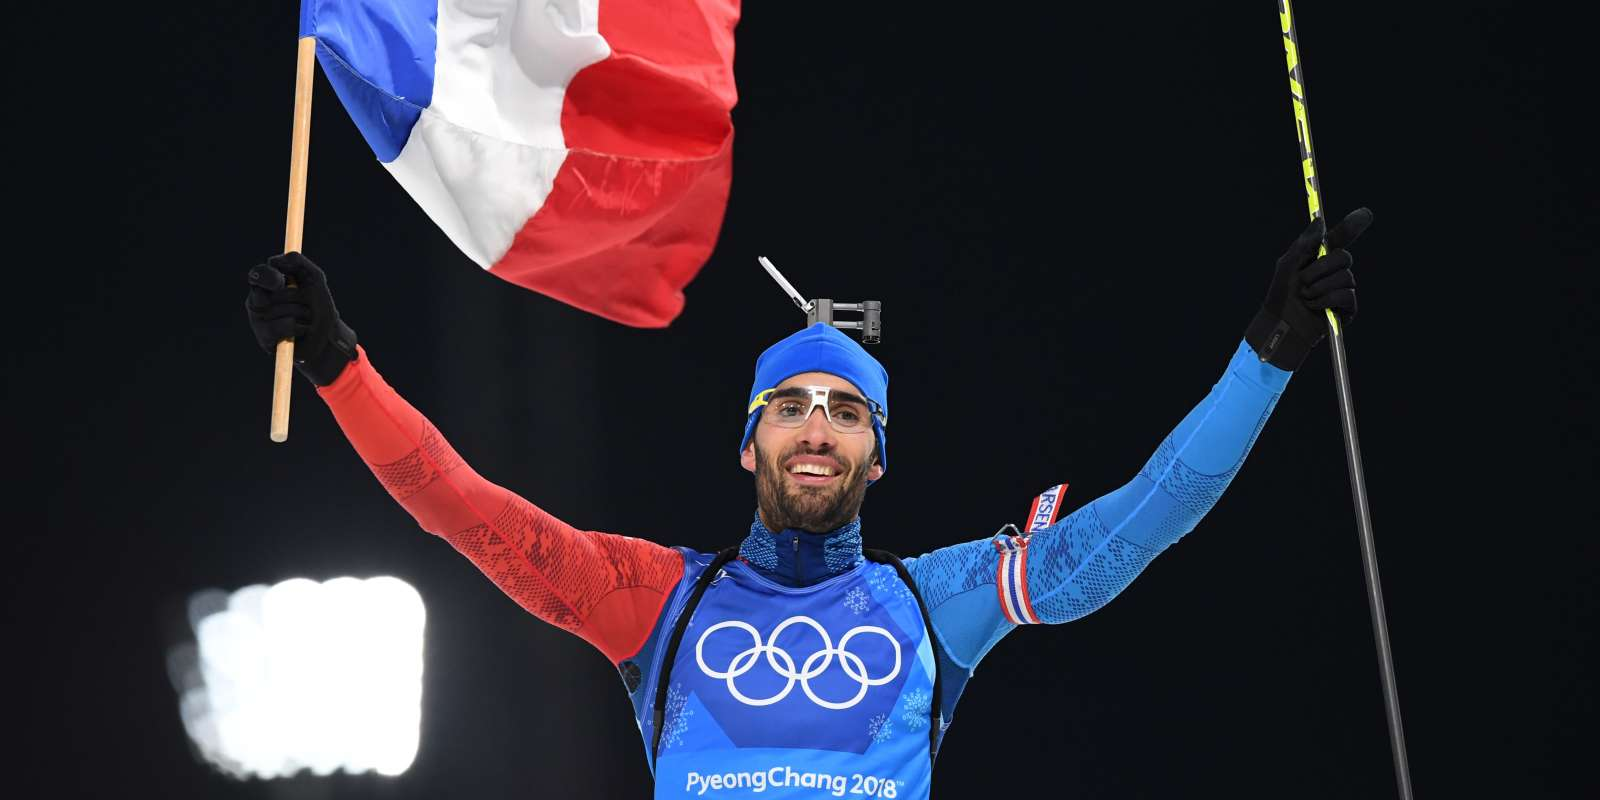 France's Martin Fourcade cross the finish line to win team gold in the mixed relay biathlon event during the Pyeongchang 2018 Winter Olympic Games on February 20, 2018, in Pyeongchang. / AFP / FRANCK FIFE